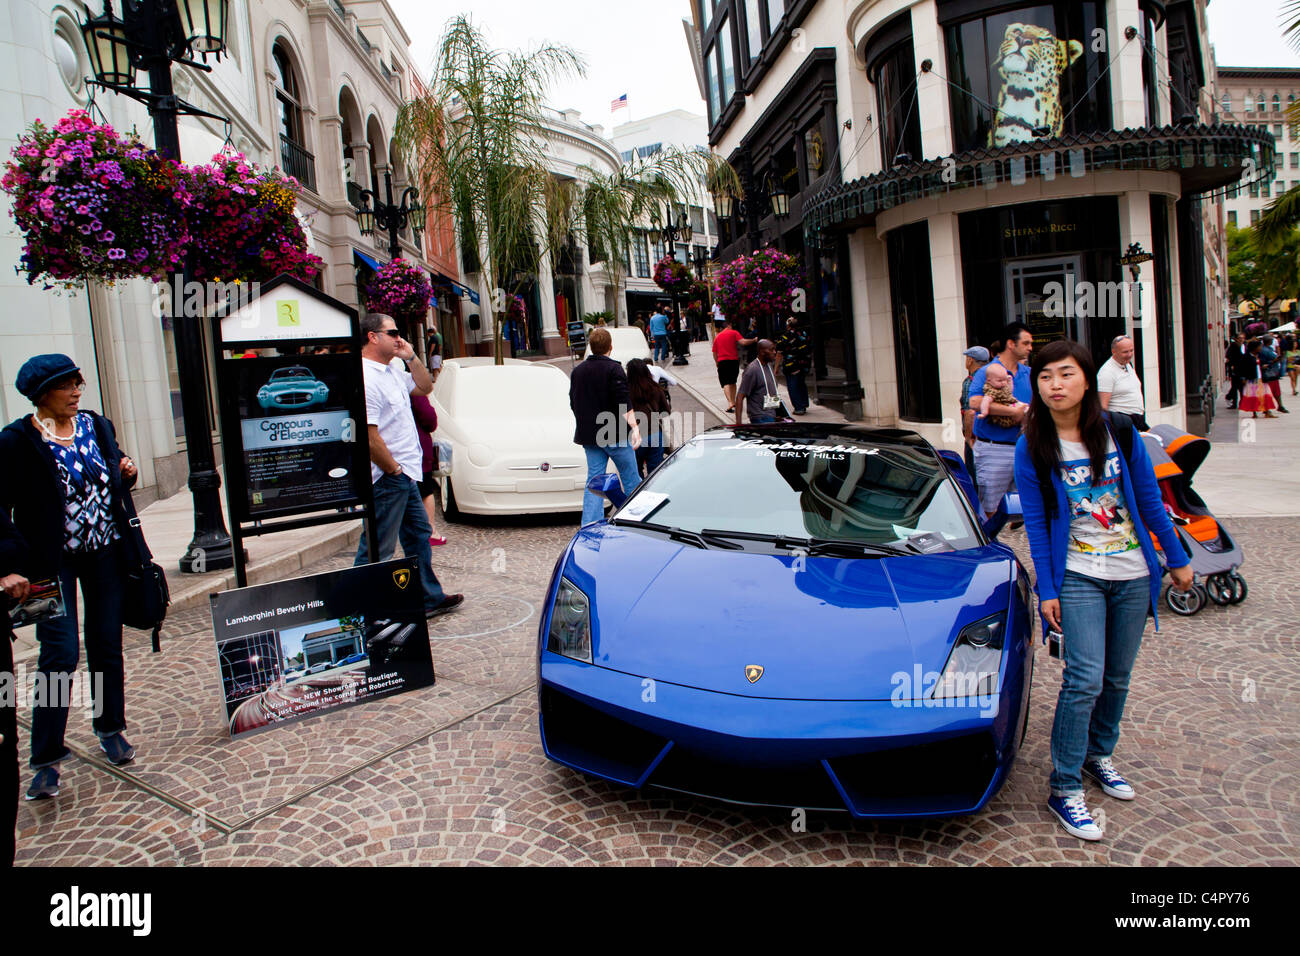 Shops On Via Rodeo Off Of Rodeo Drive In Beverly Hills California In 2011    Stock